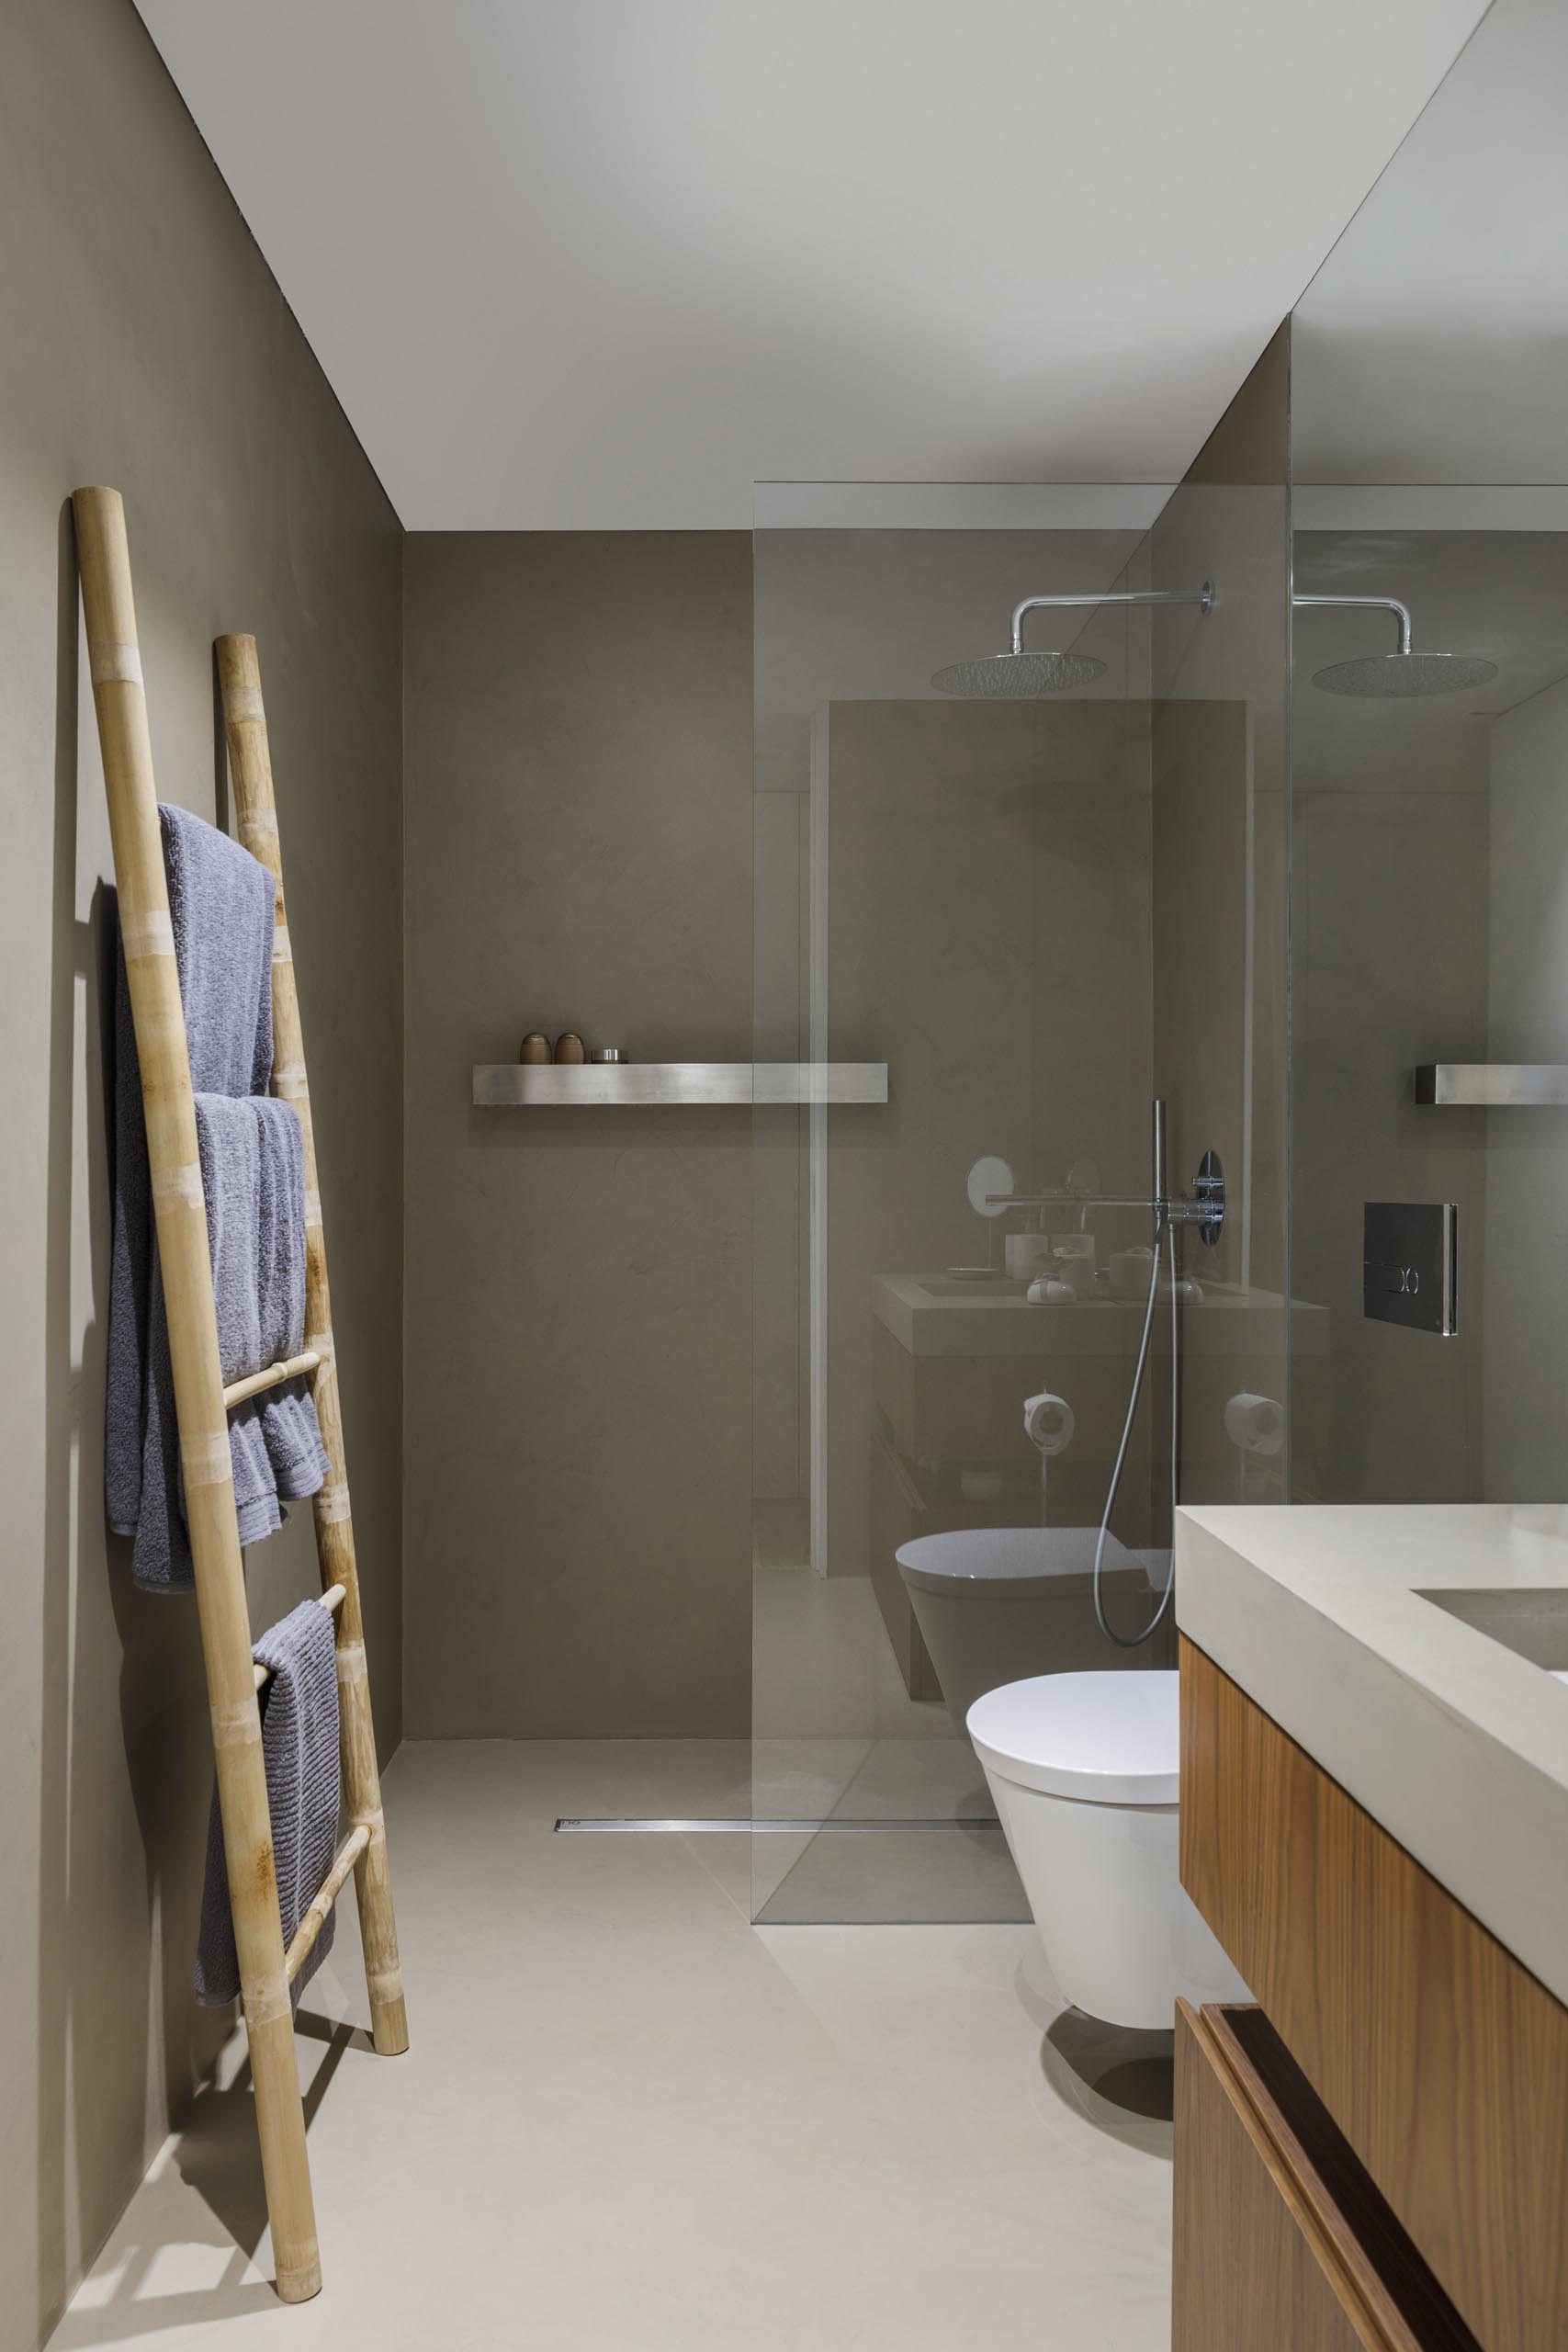 A modern bathroom with a floating shelf in the shower.